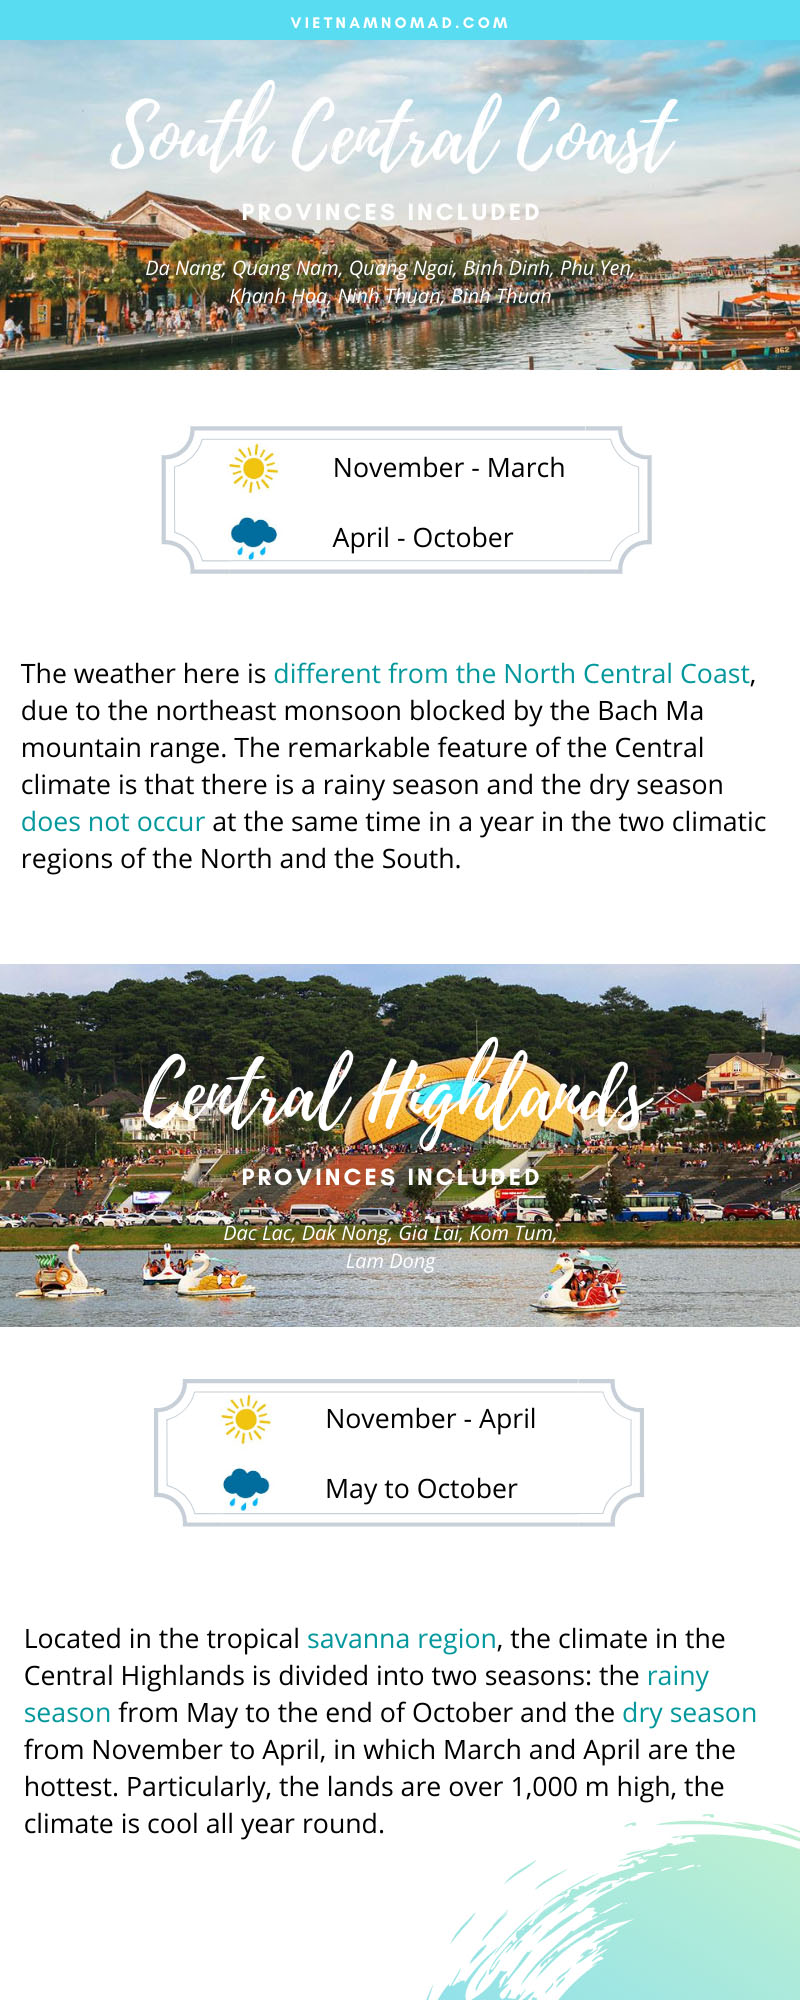 Vietnam weather infographic - The climate in South Central Coast and Central Highlands of Vietnam